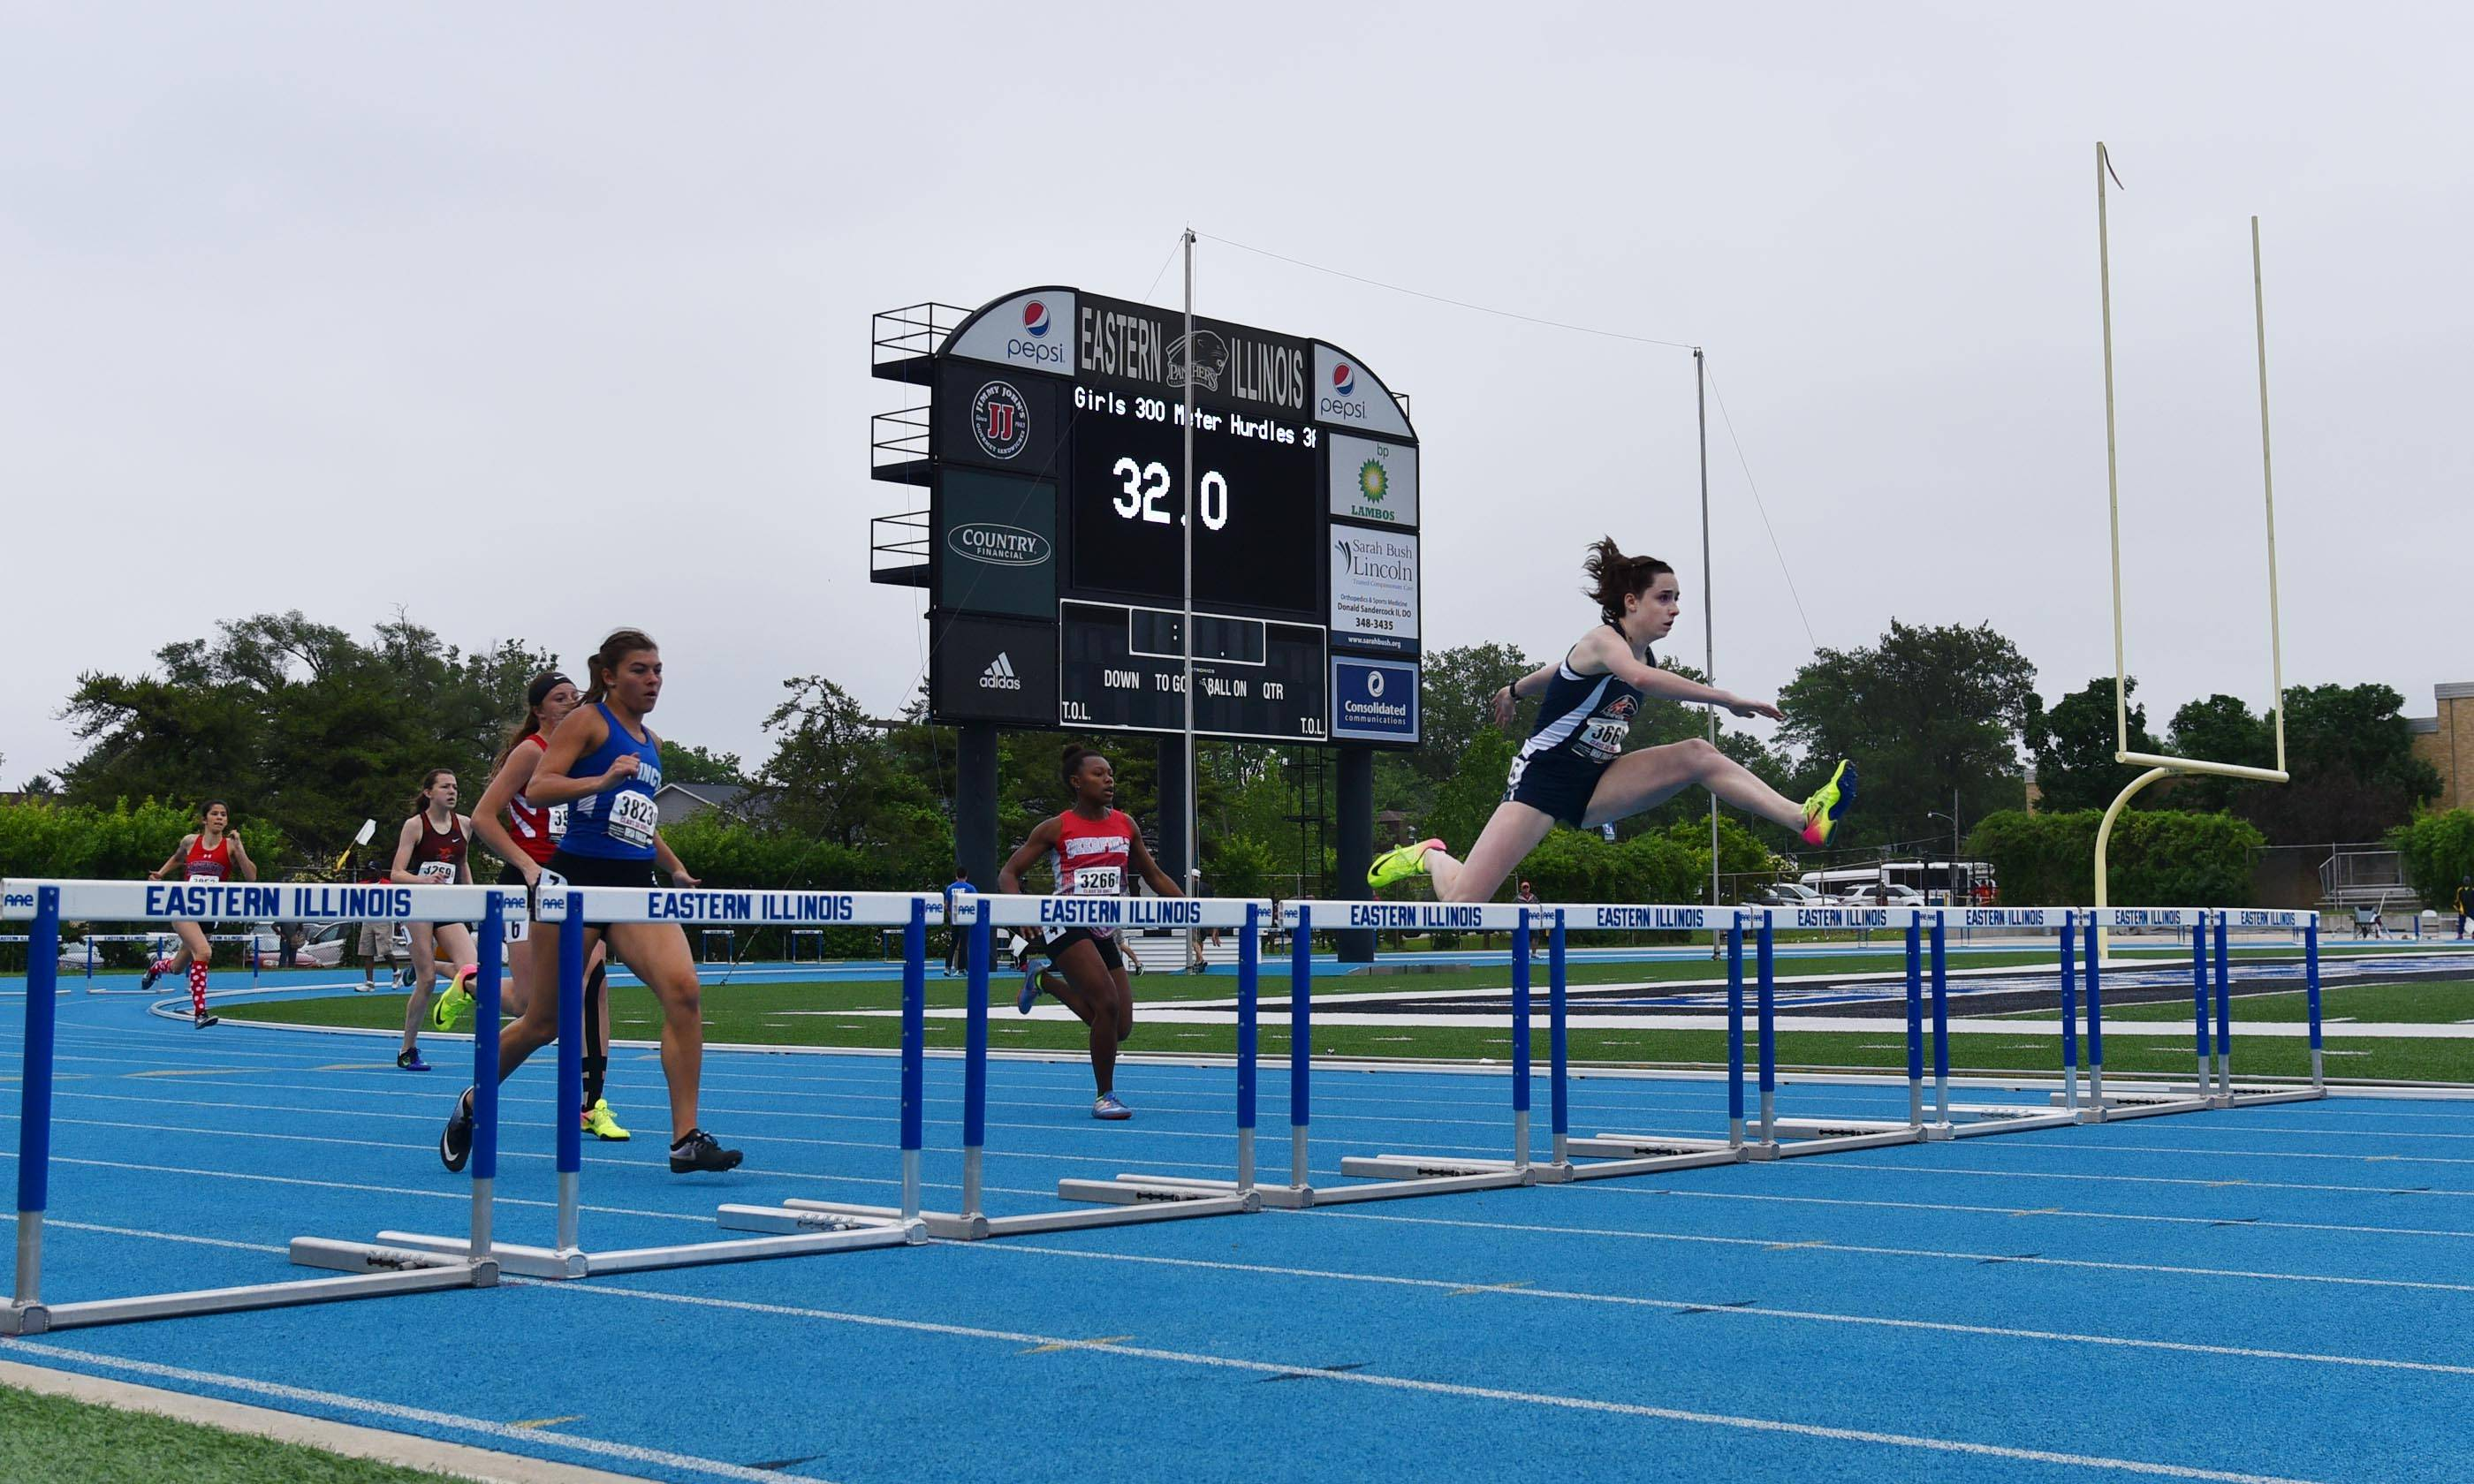 Naperville North's Halle Bieber leads the Class 3A 300-Meter Hurdles at the prelims of the state girls track and field meet Friday at Eastern Illinois University in Charleston.